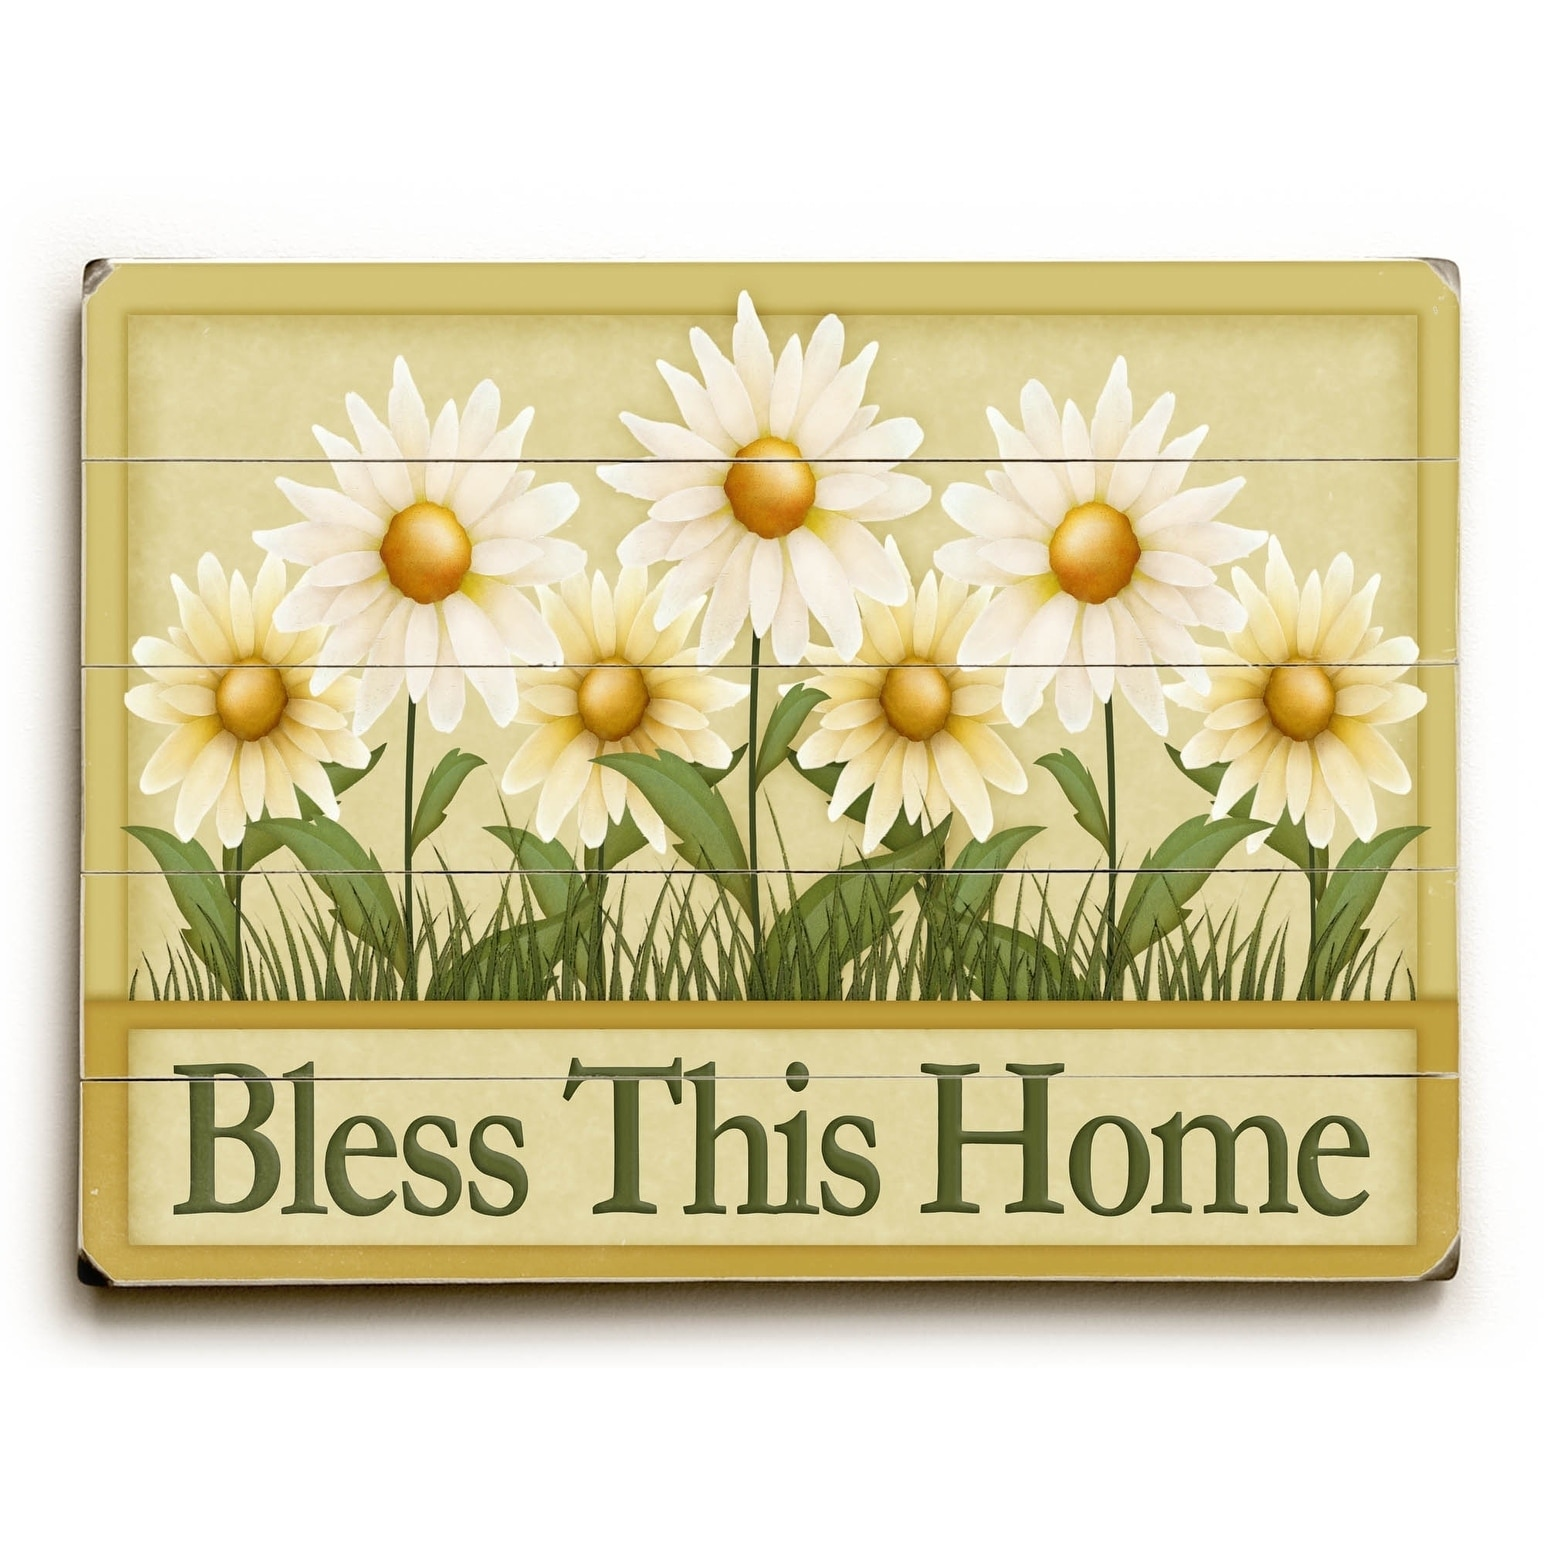 Shop Bless This House - 9x12 Solid Wood Wall Decor by Artehouse - 9 ...